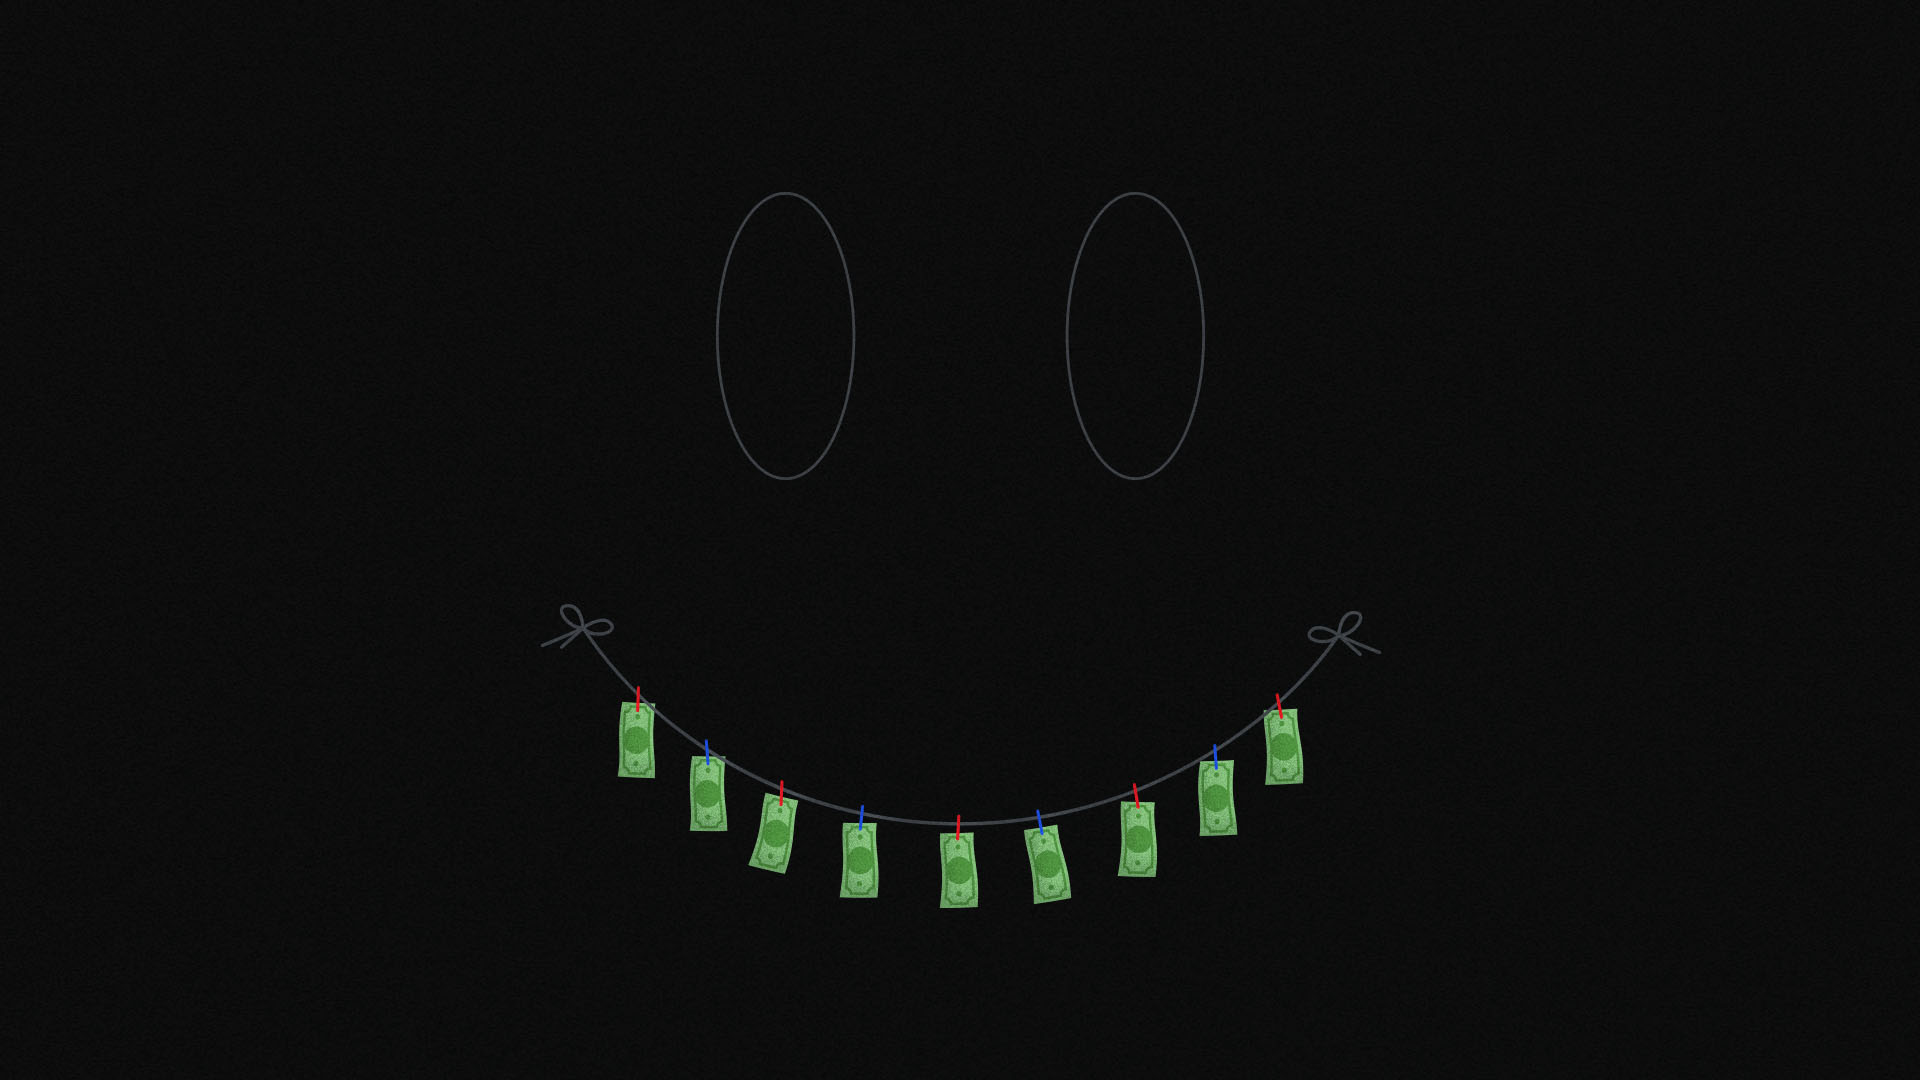 an image of smiley face with banknotes for teeth